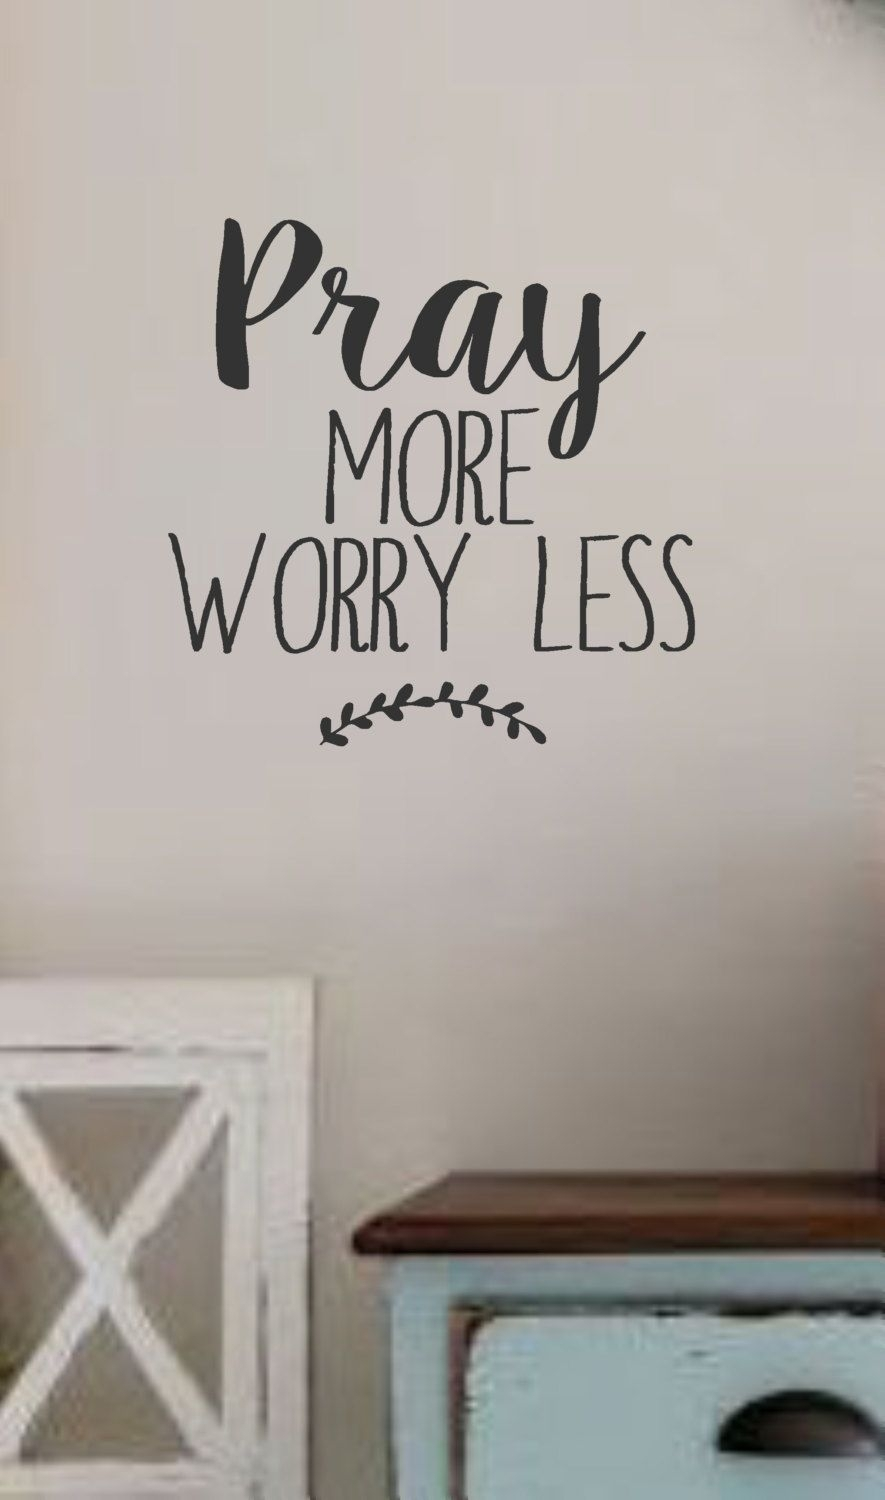 Pray More Worry Less  Vinyl Wall Decal  Wall Quotes  Bible Quotes With Regard To 2018 Vinyl Wall Accents (View 8 of 15)